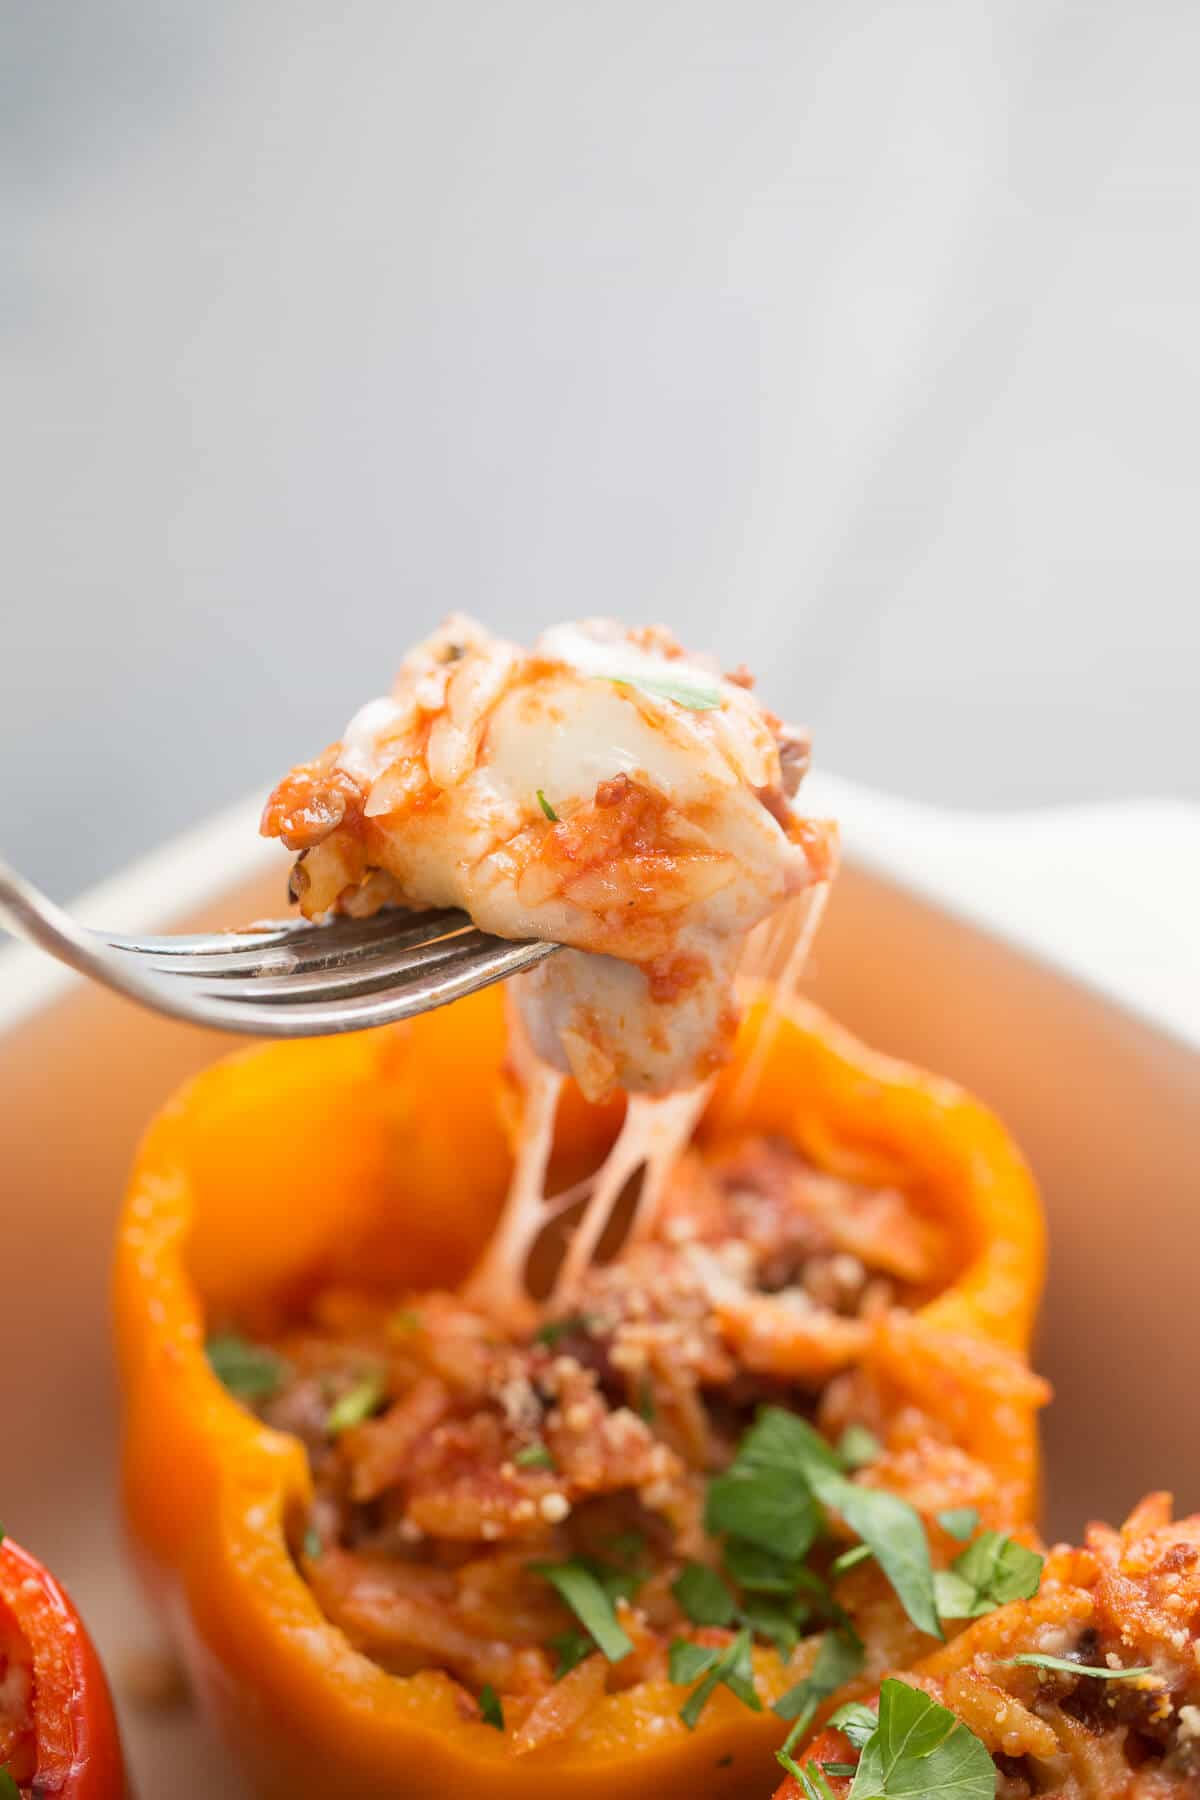 Love stuffed peppers? Then these Italian Stuffed Peppers are a must try!